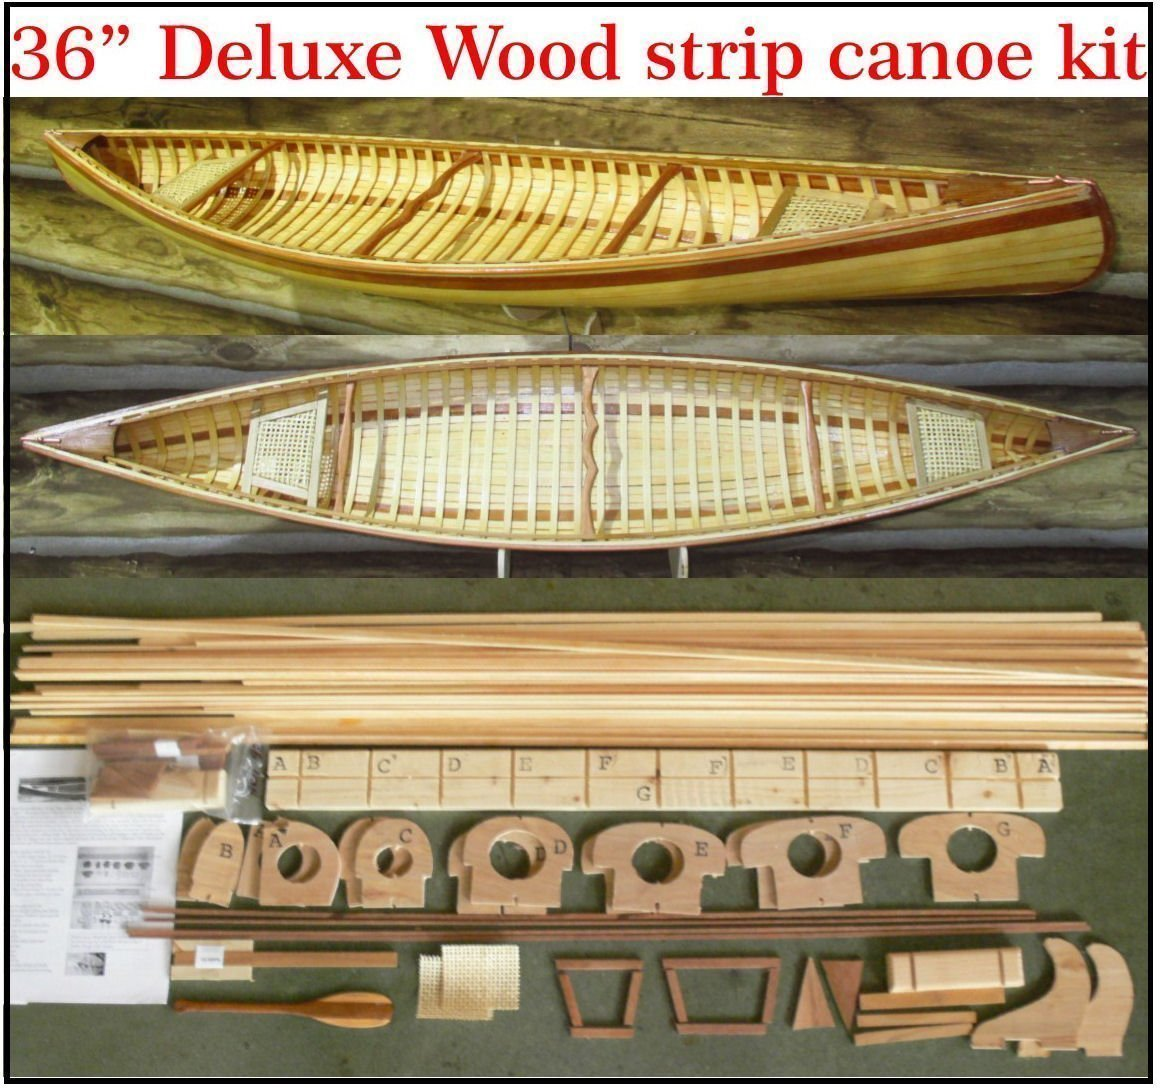 36 E.M. White Guide strip canoe kit